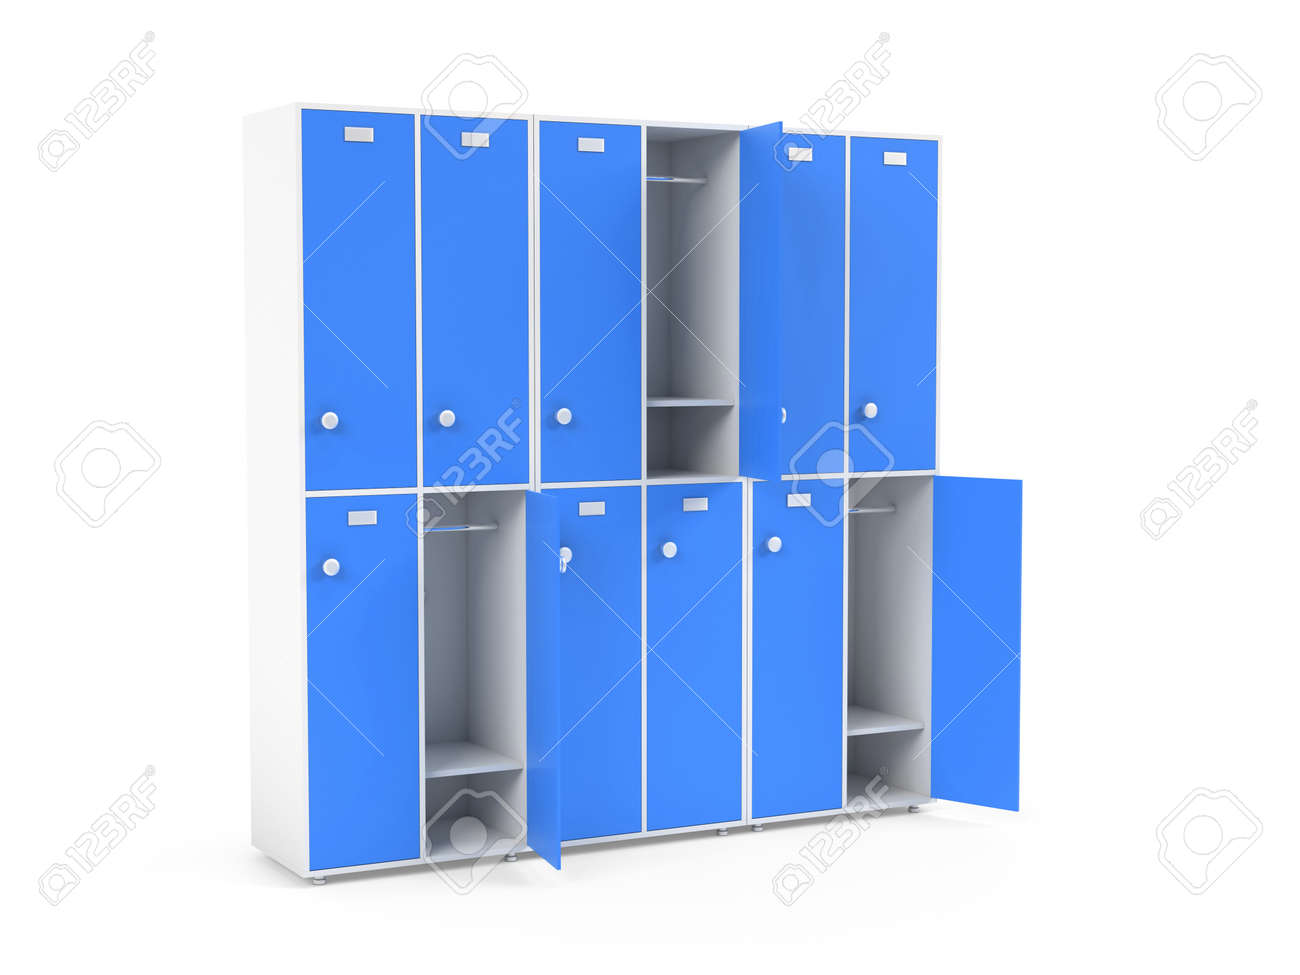 Blue lockers. Two row section of lockers for schoool or gym. 3d rendering illustration isolated on white background - 150521366